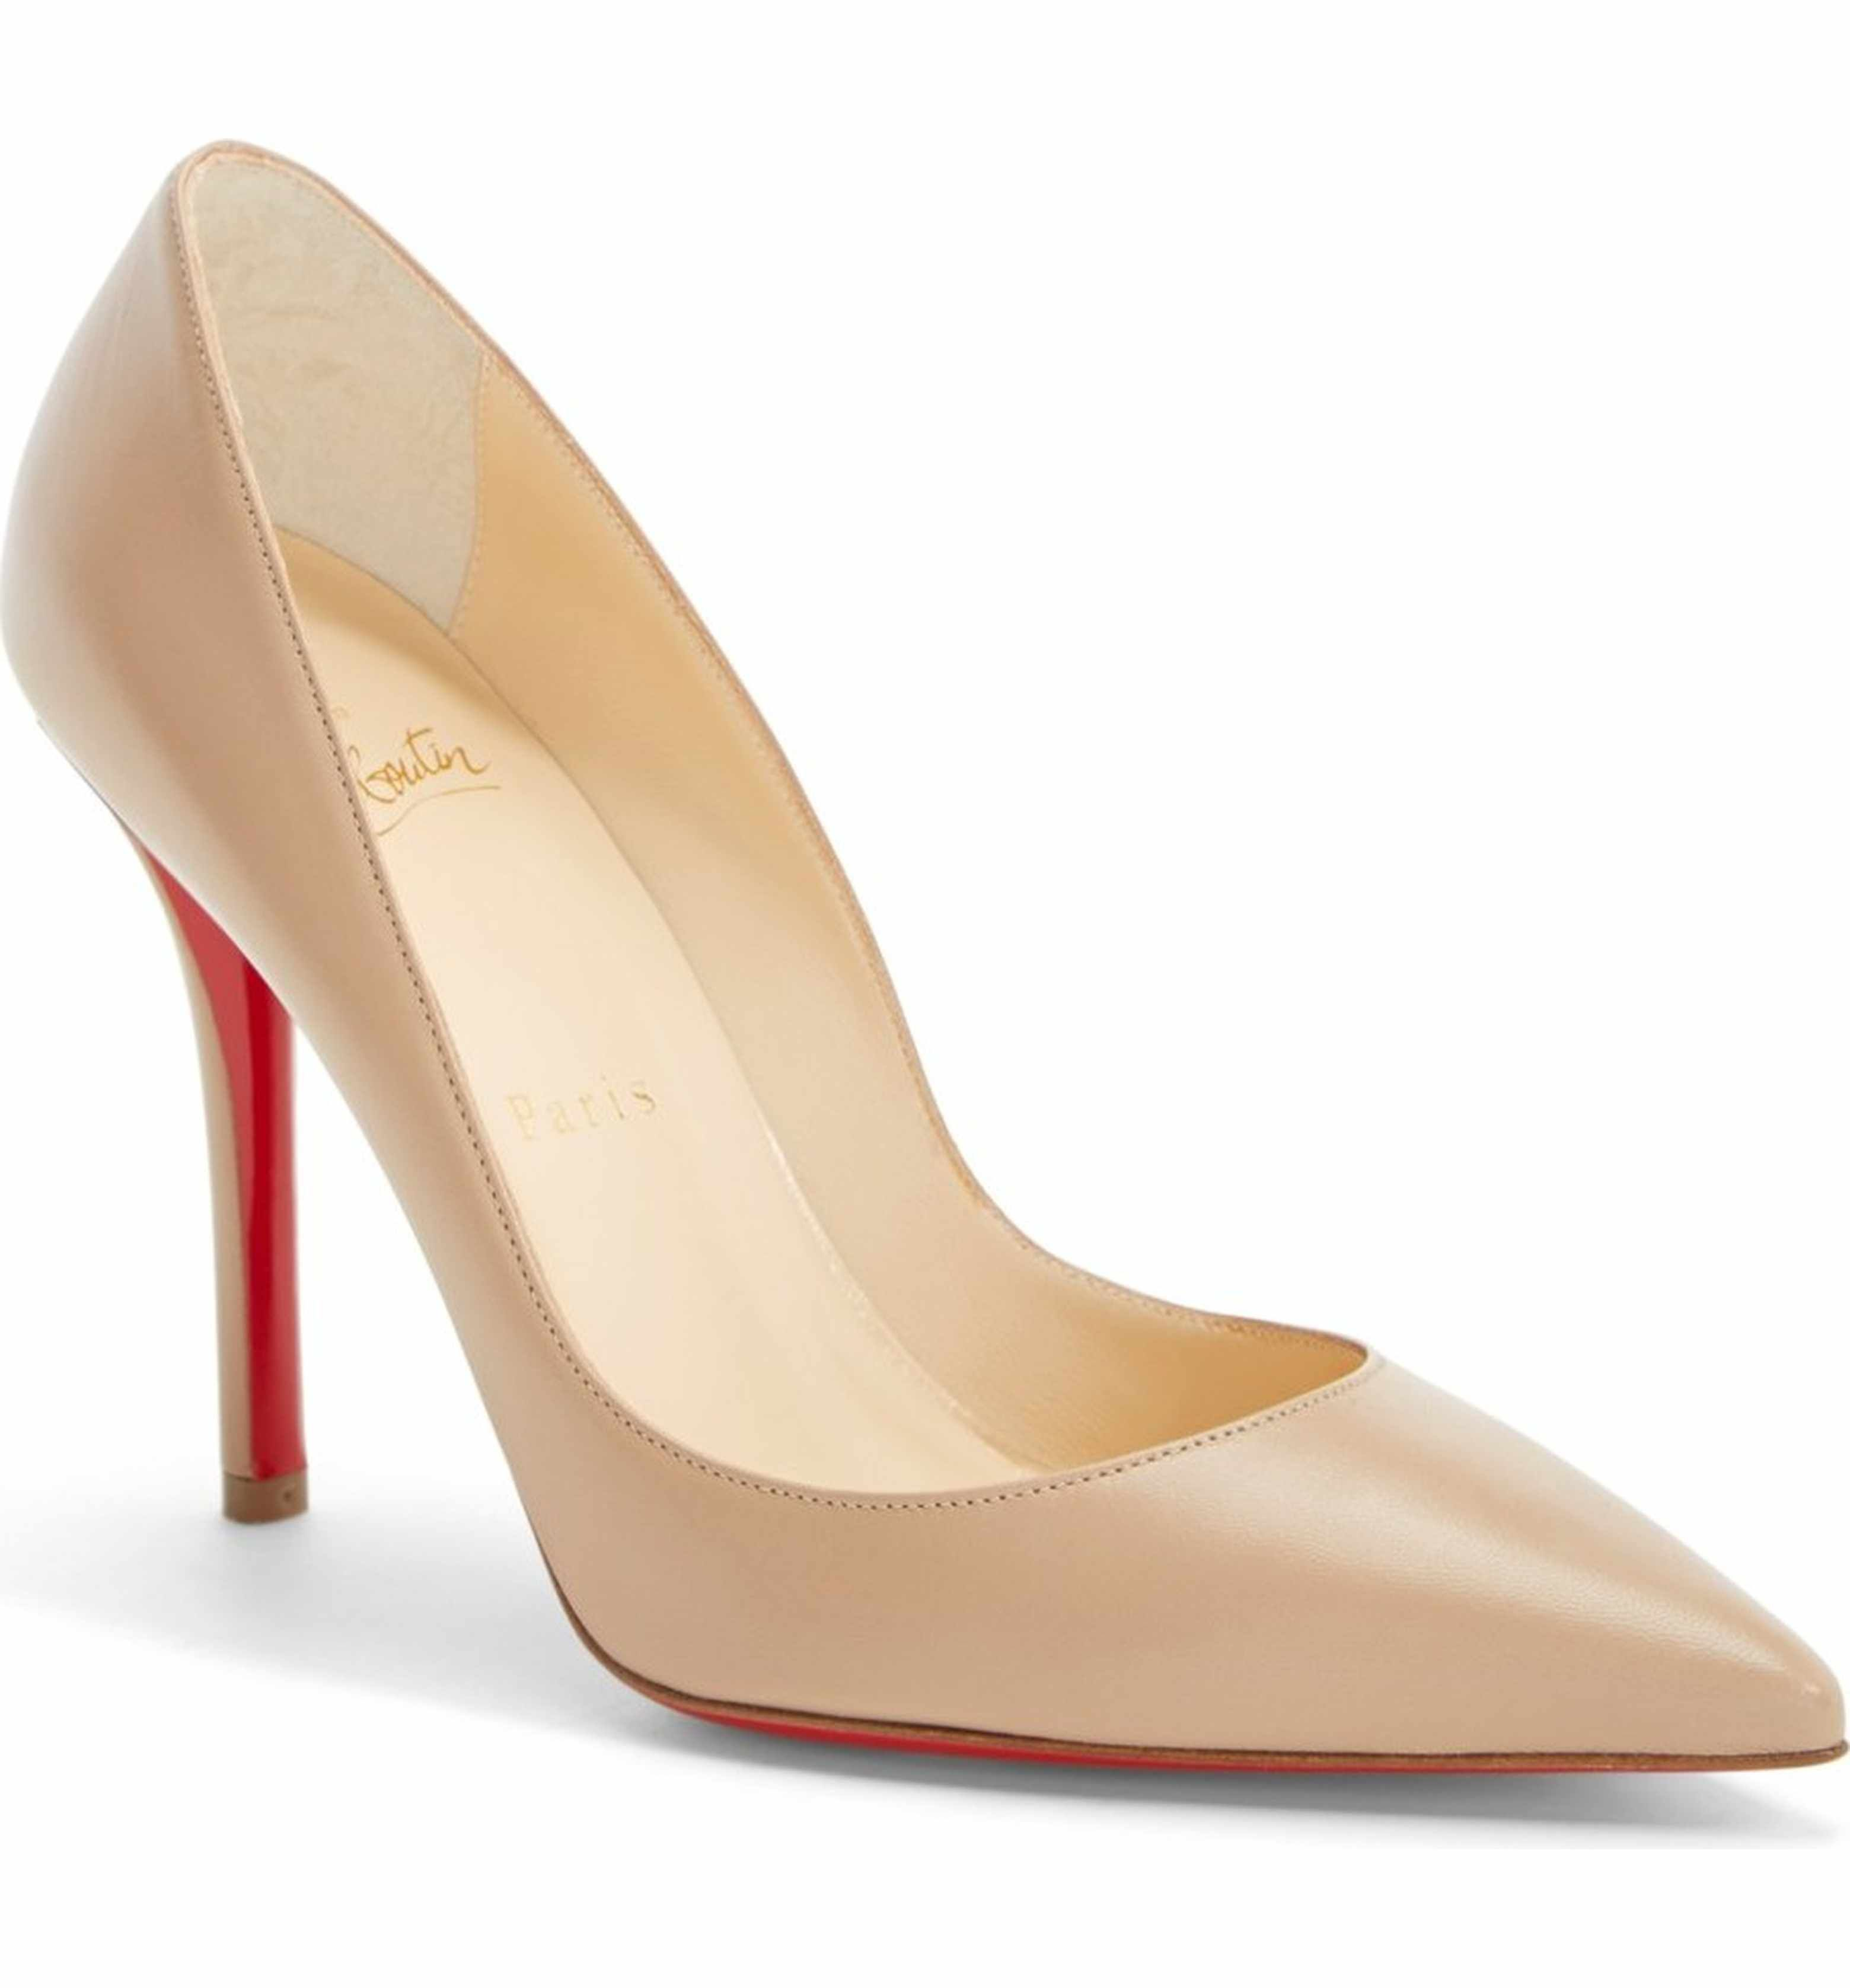 f1cc4741d1e Main Image - Christian Louboutin 'Apostrophy' Pointy Toe Pump ...